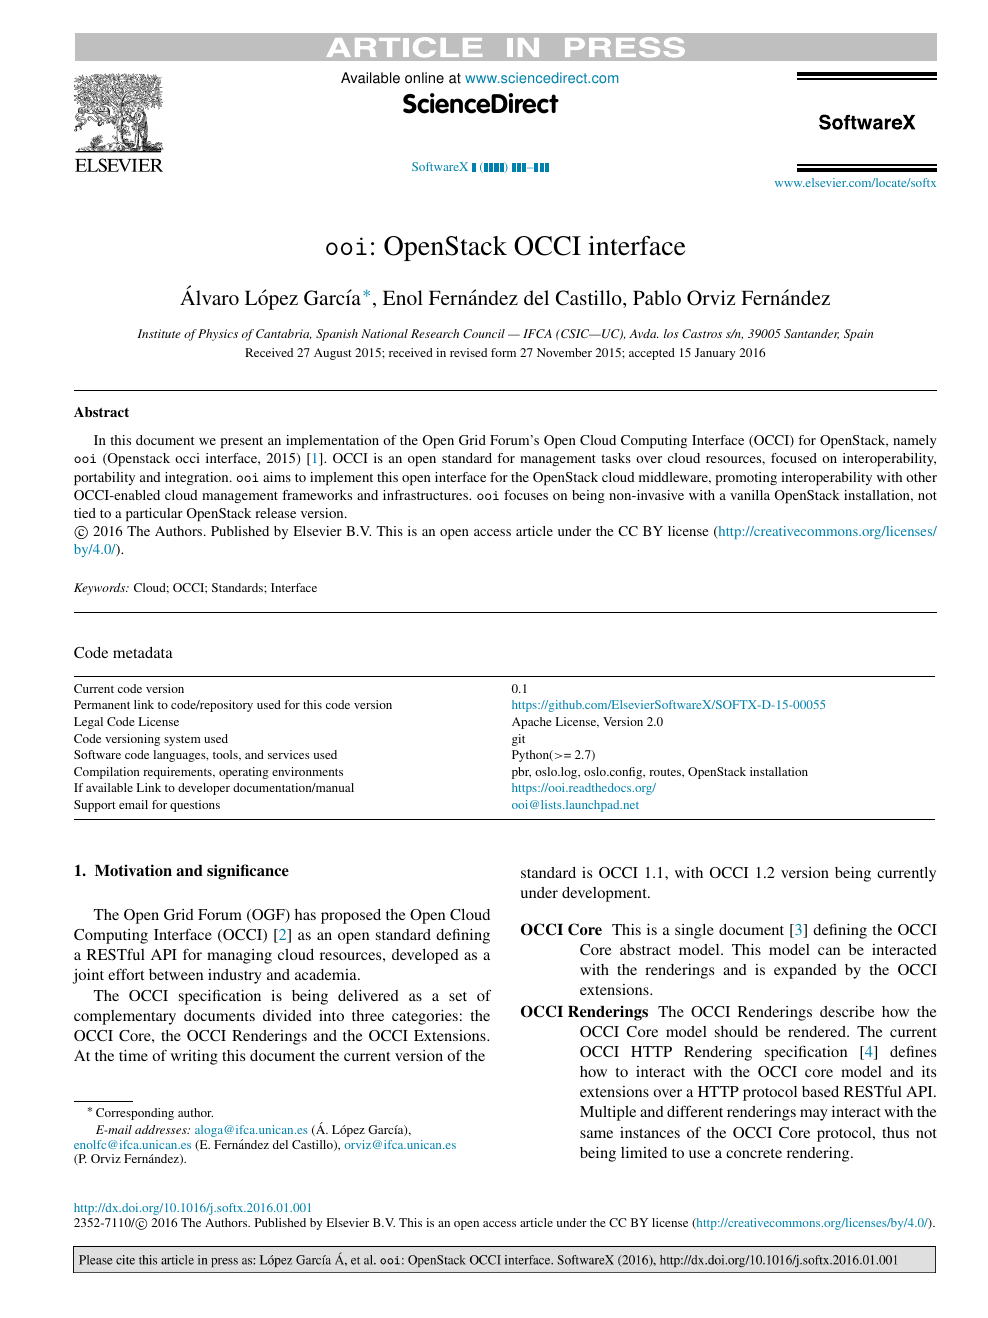 ooi: OpenStack OCCI interface – topic of research paper in